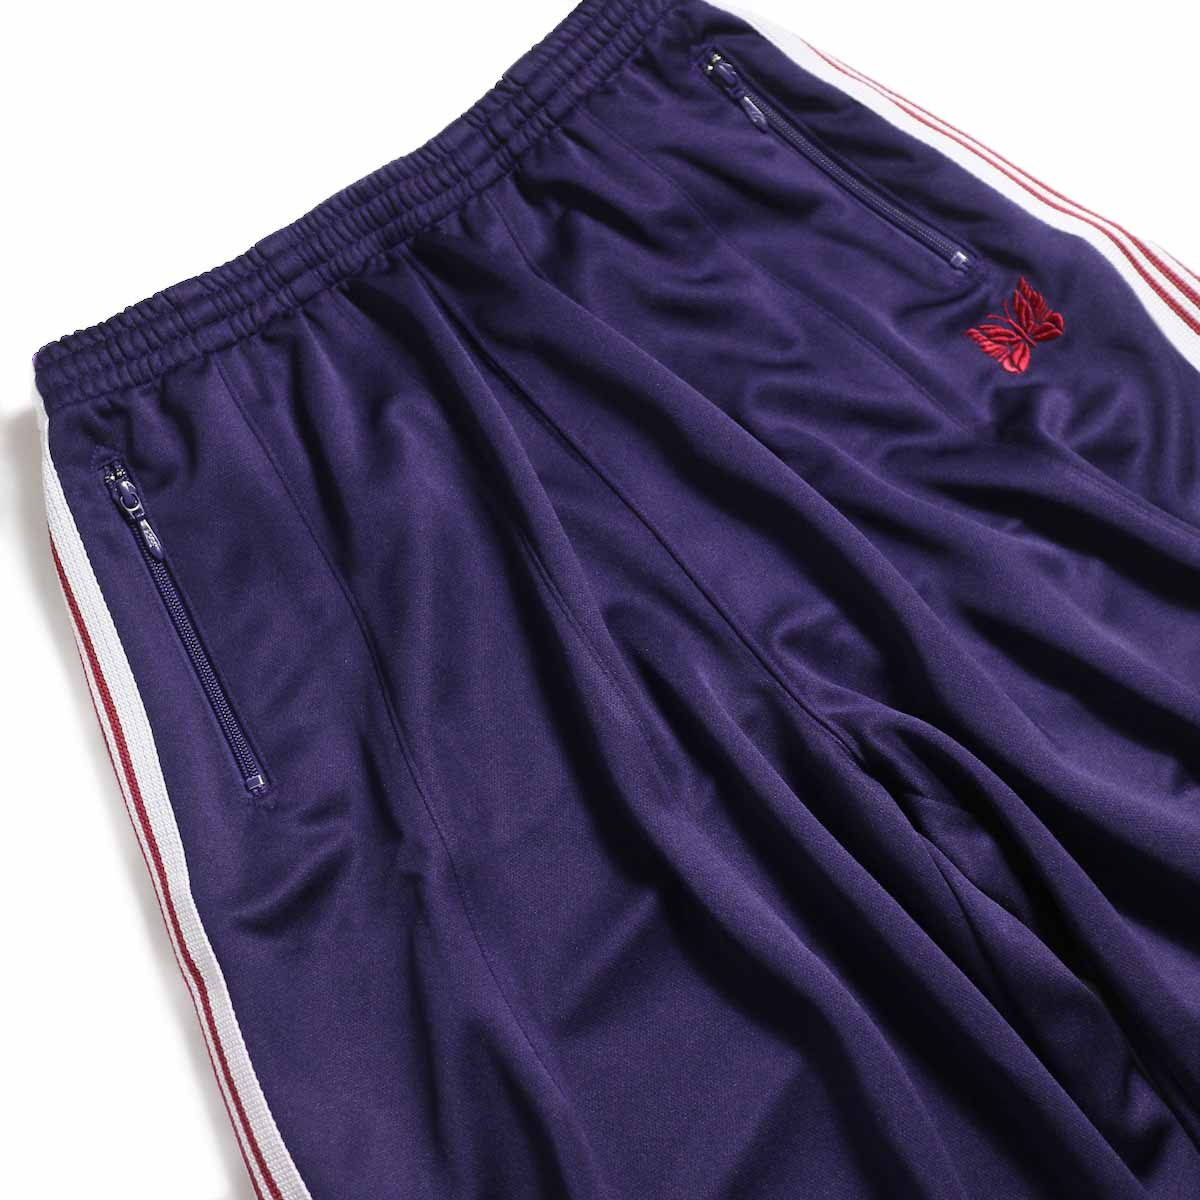 NEEDLES / H.D. Track Pant  Poly Smooth -Eggplant ウエスト